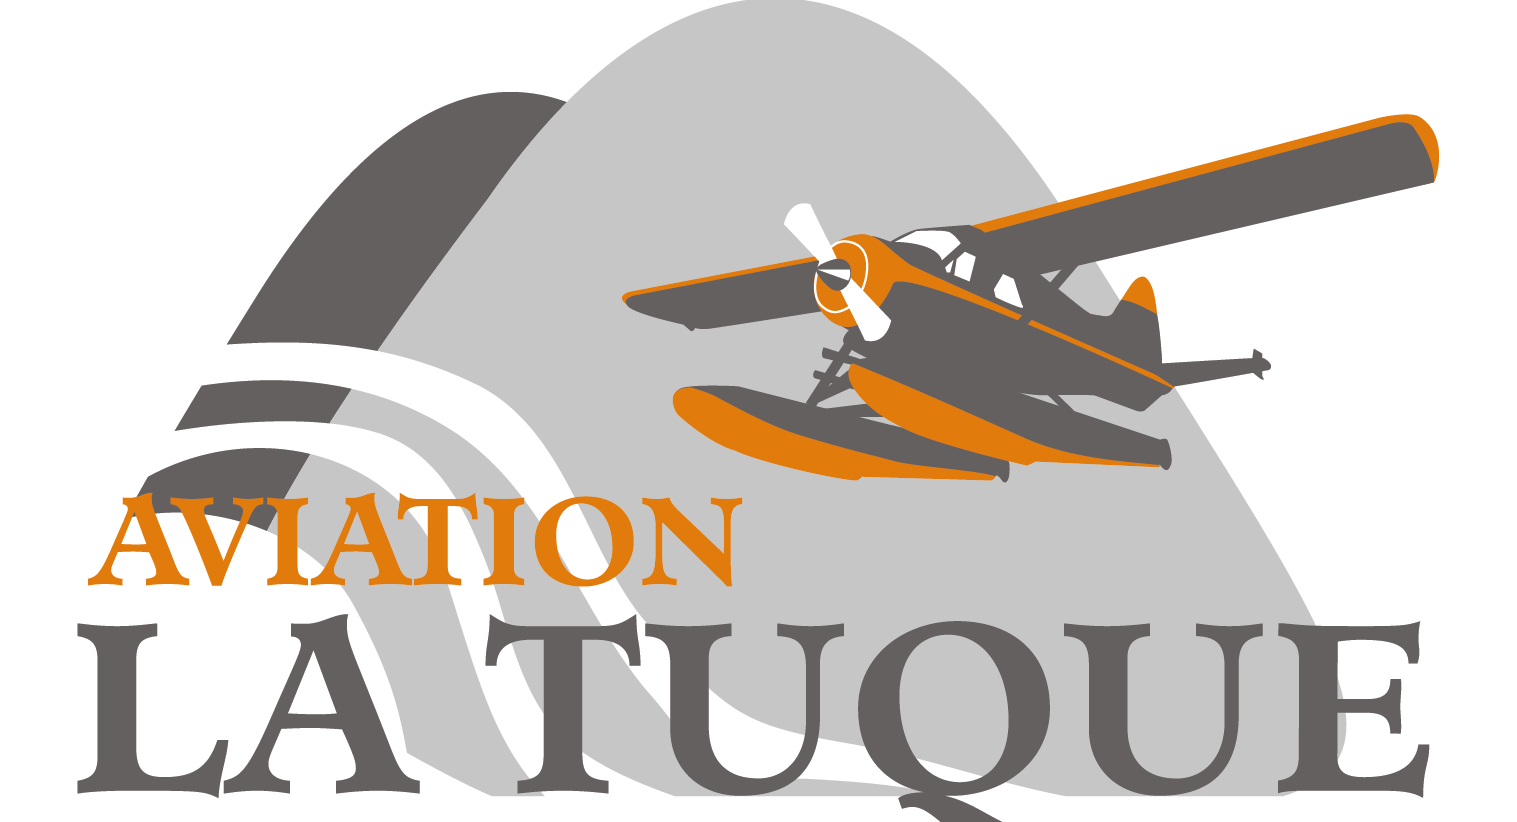 Aviation La Tuque